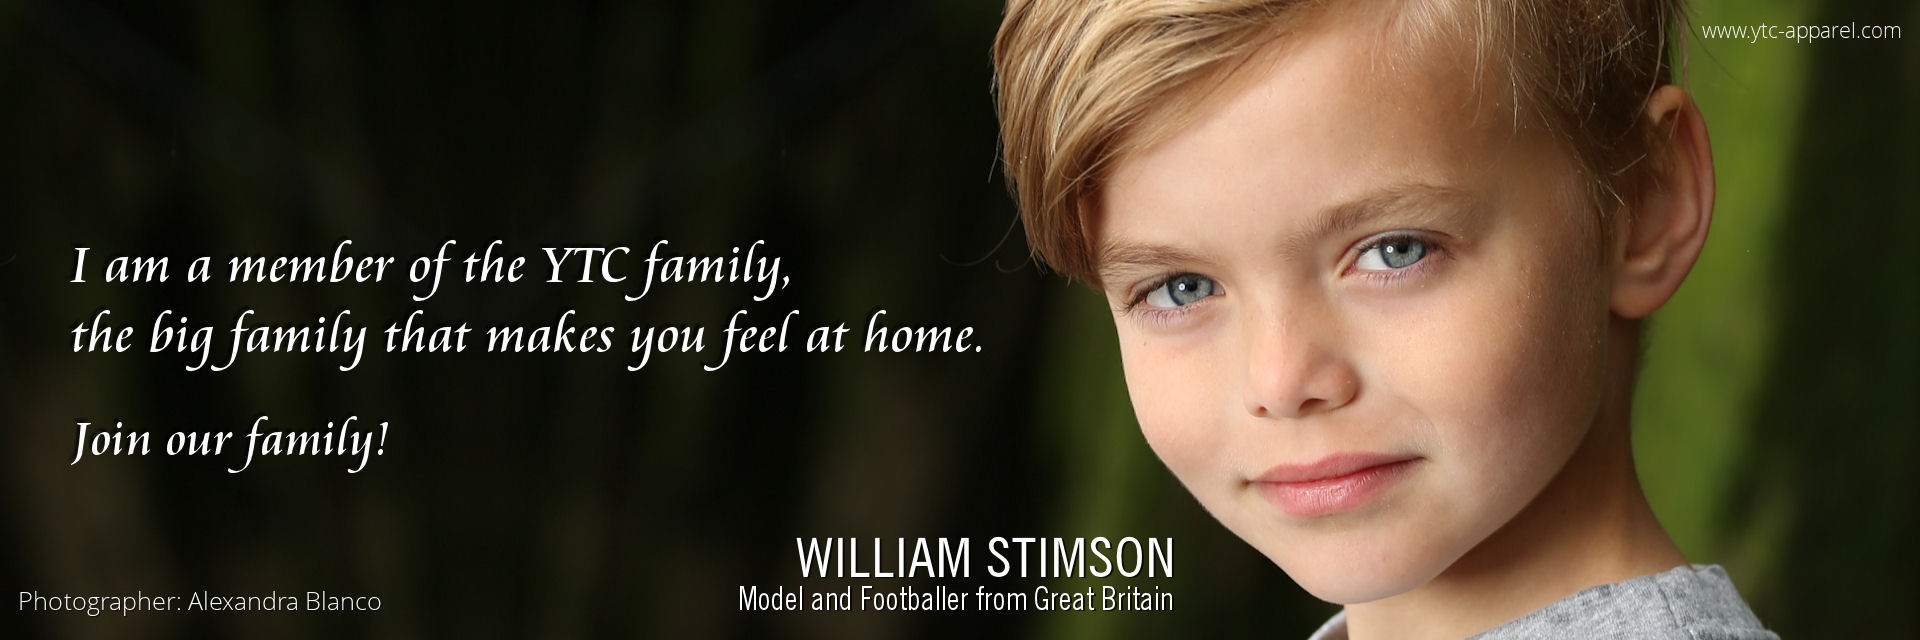 YTC FAMILY - the big family that makes you feel at home